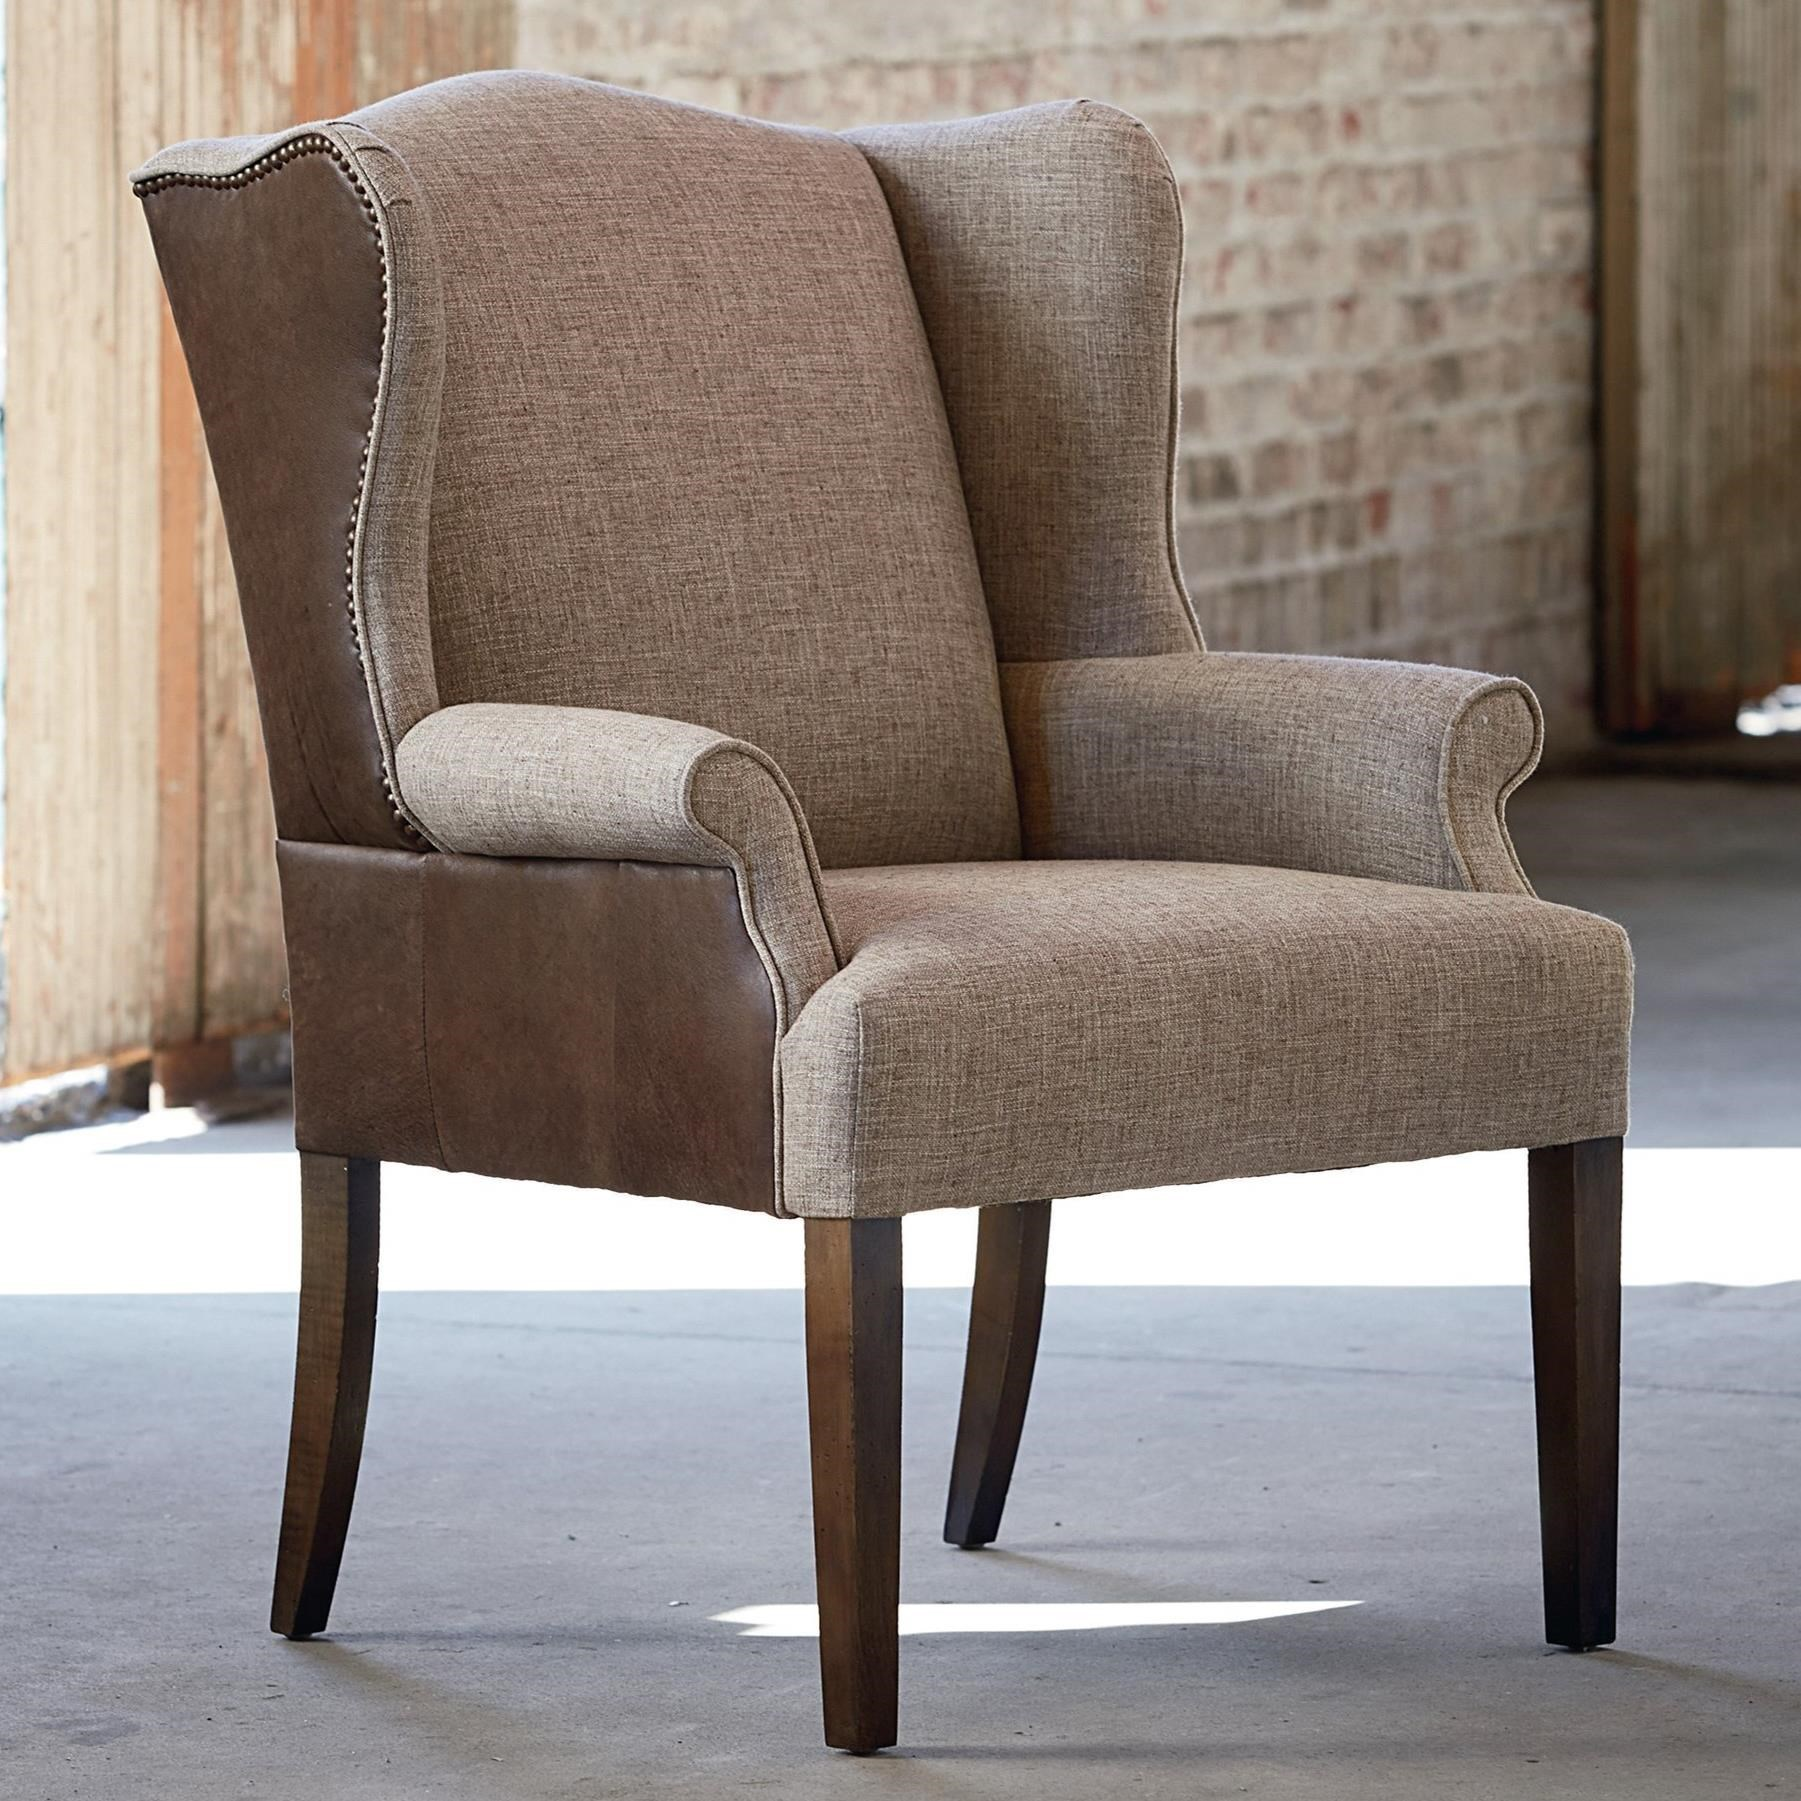 Wingback Dining Room Chairs Bassett Arden 1118 02lf Customizable Wing Back Leather Fabric